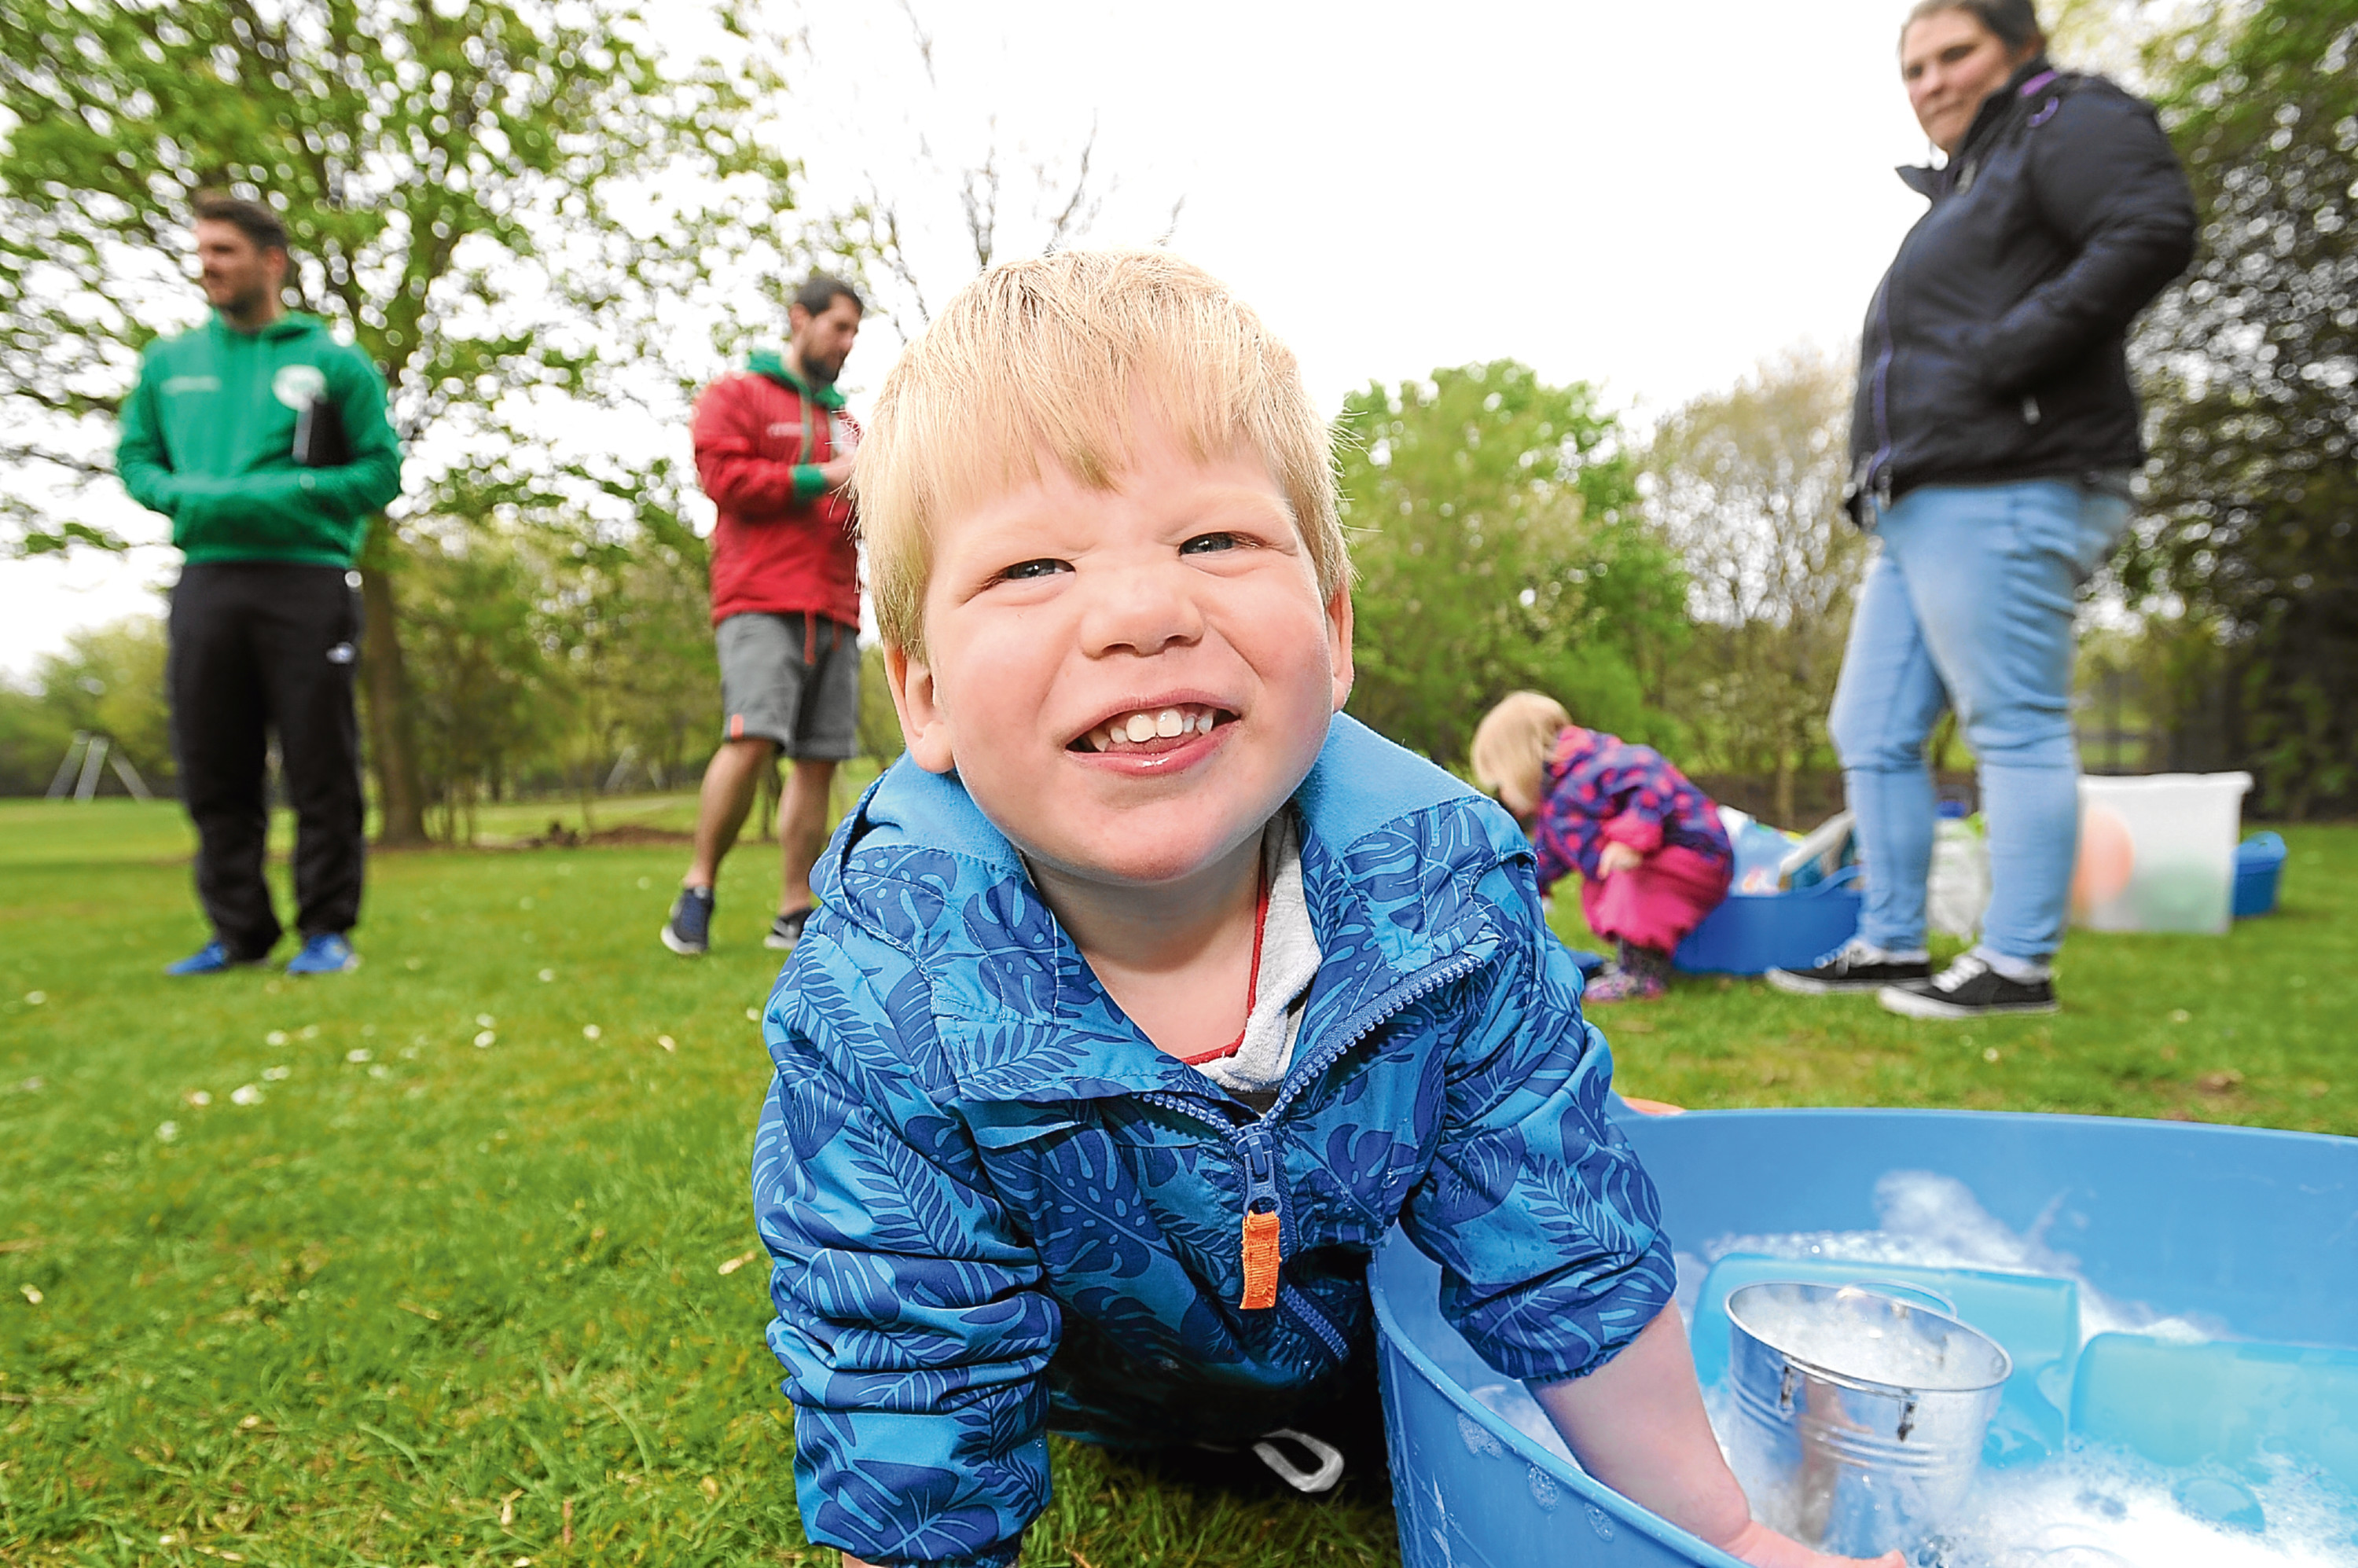 Rudi Carroll enjoys Messy Play at South Road park. The event was part of ParkLives, a scheme to get Dundonians active.